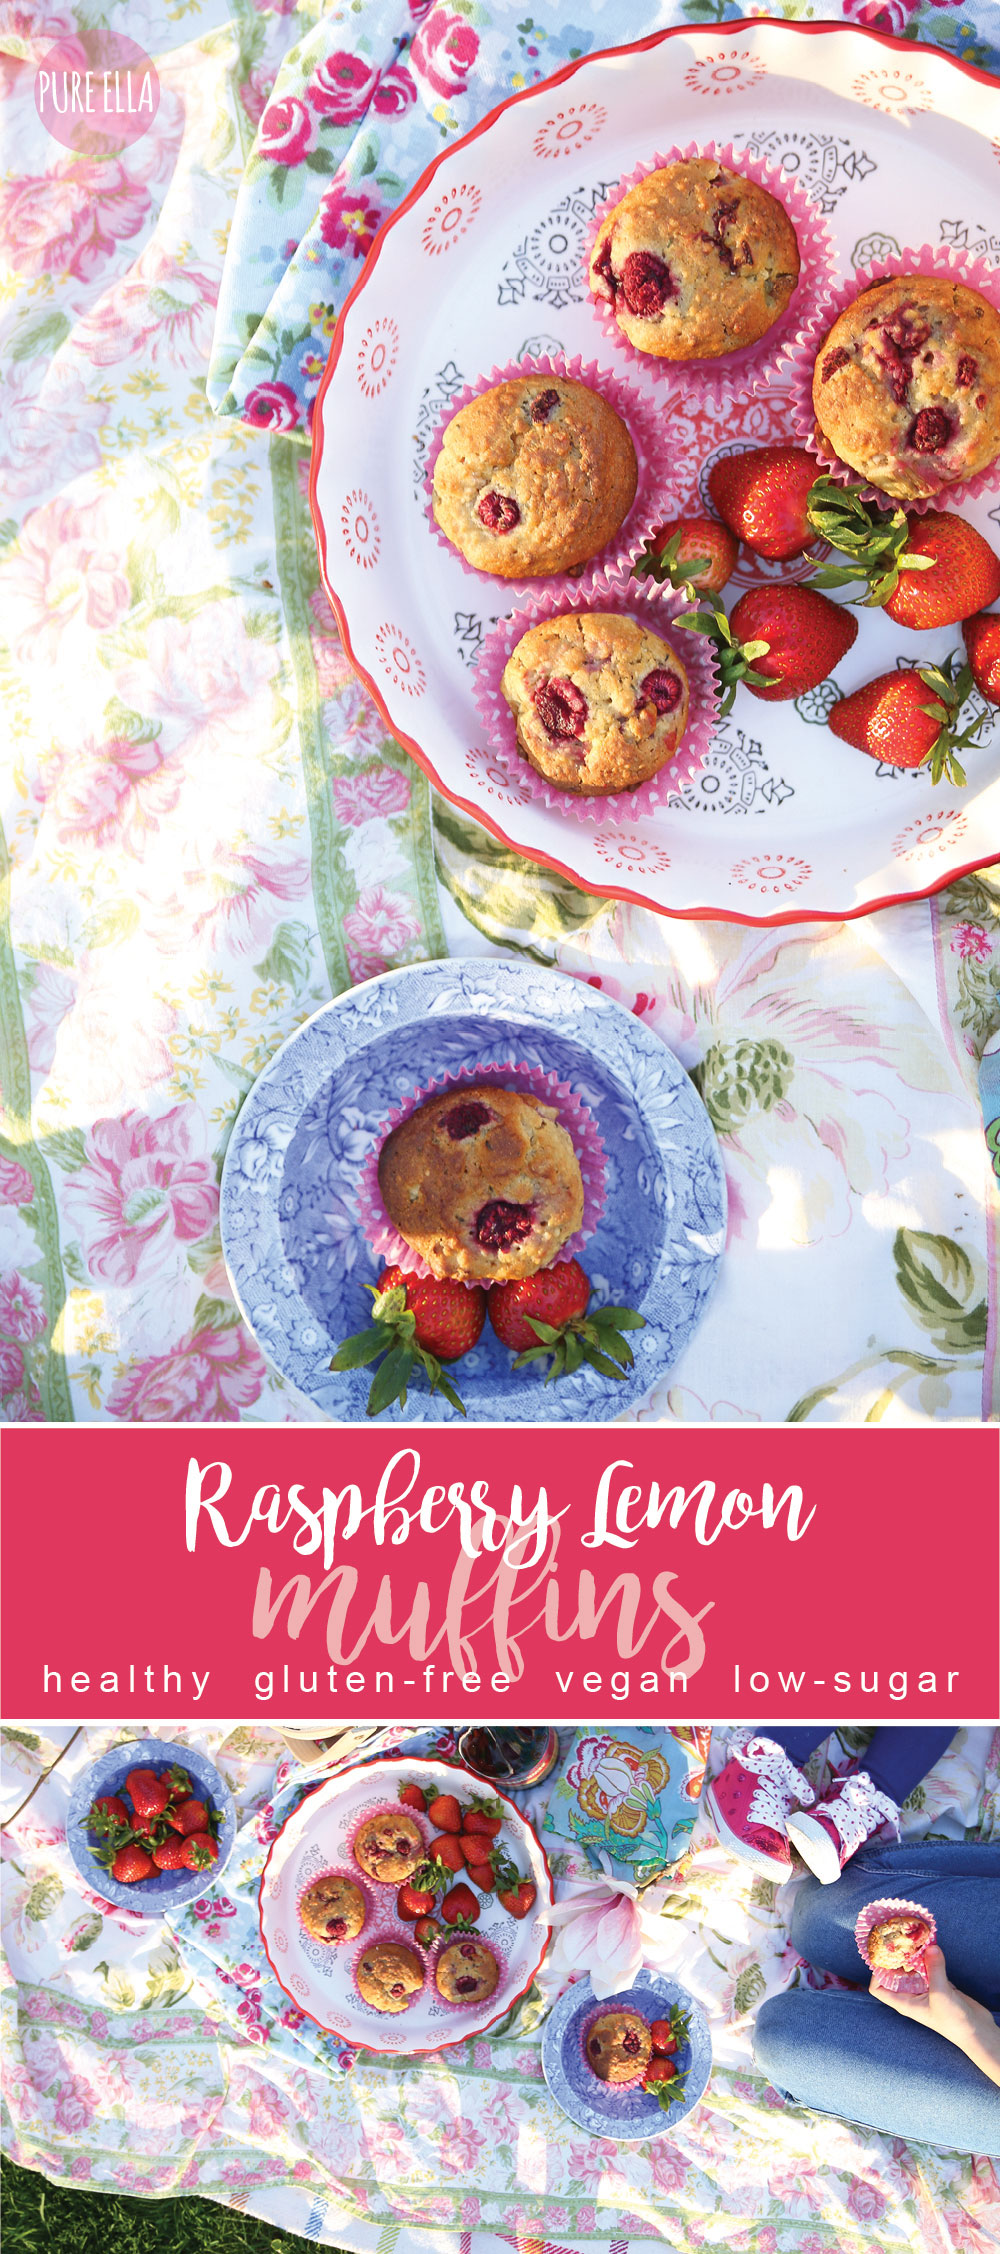 Ella-Leche-Pure-Ella-Raspberry-Lemon-Muffins-gluten-free-vegan-low-sugar9